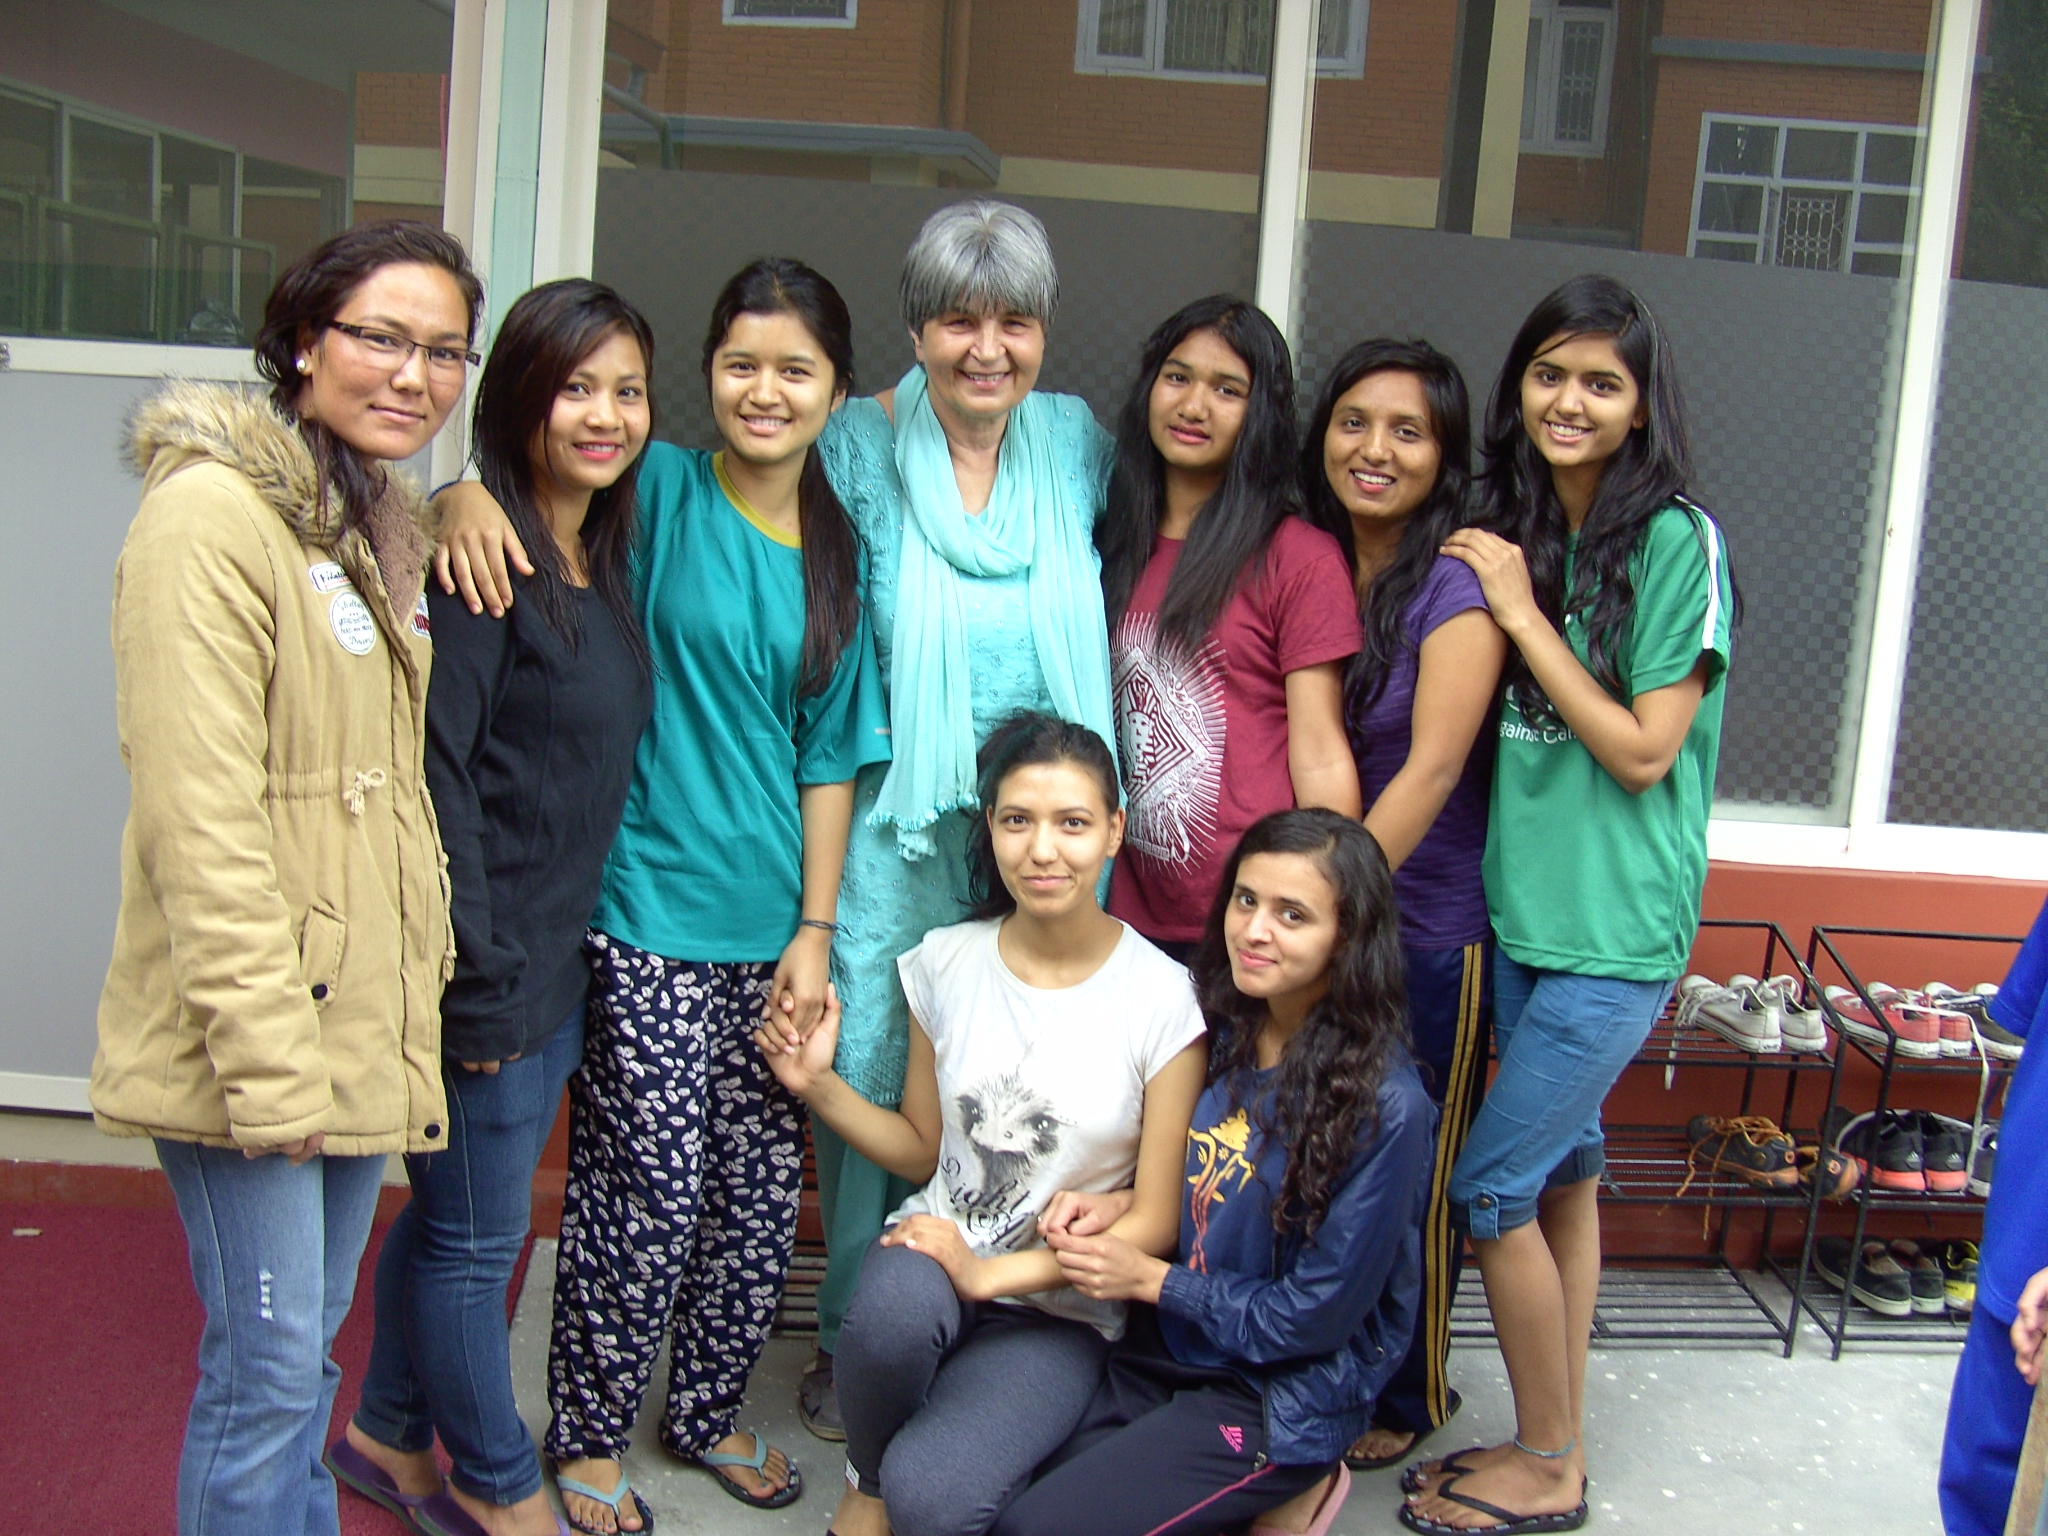 Ellen Dietrich poses with some of the girls who live in the Home of Hope in Kathmandu, Nepal in 2016. Home of Hope is a charity organization Ellen Dietrich founded in 1998.